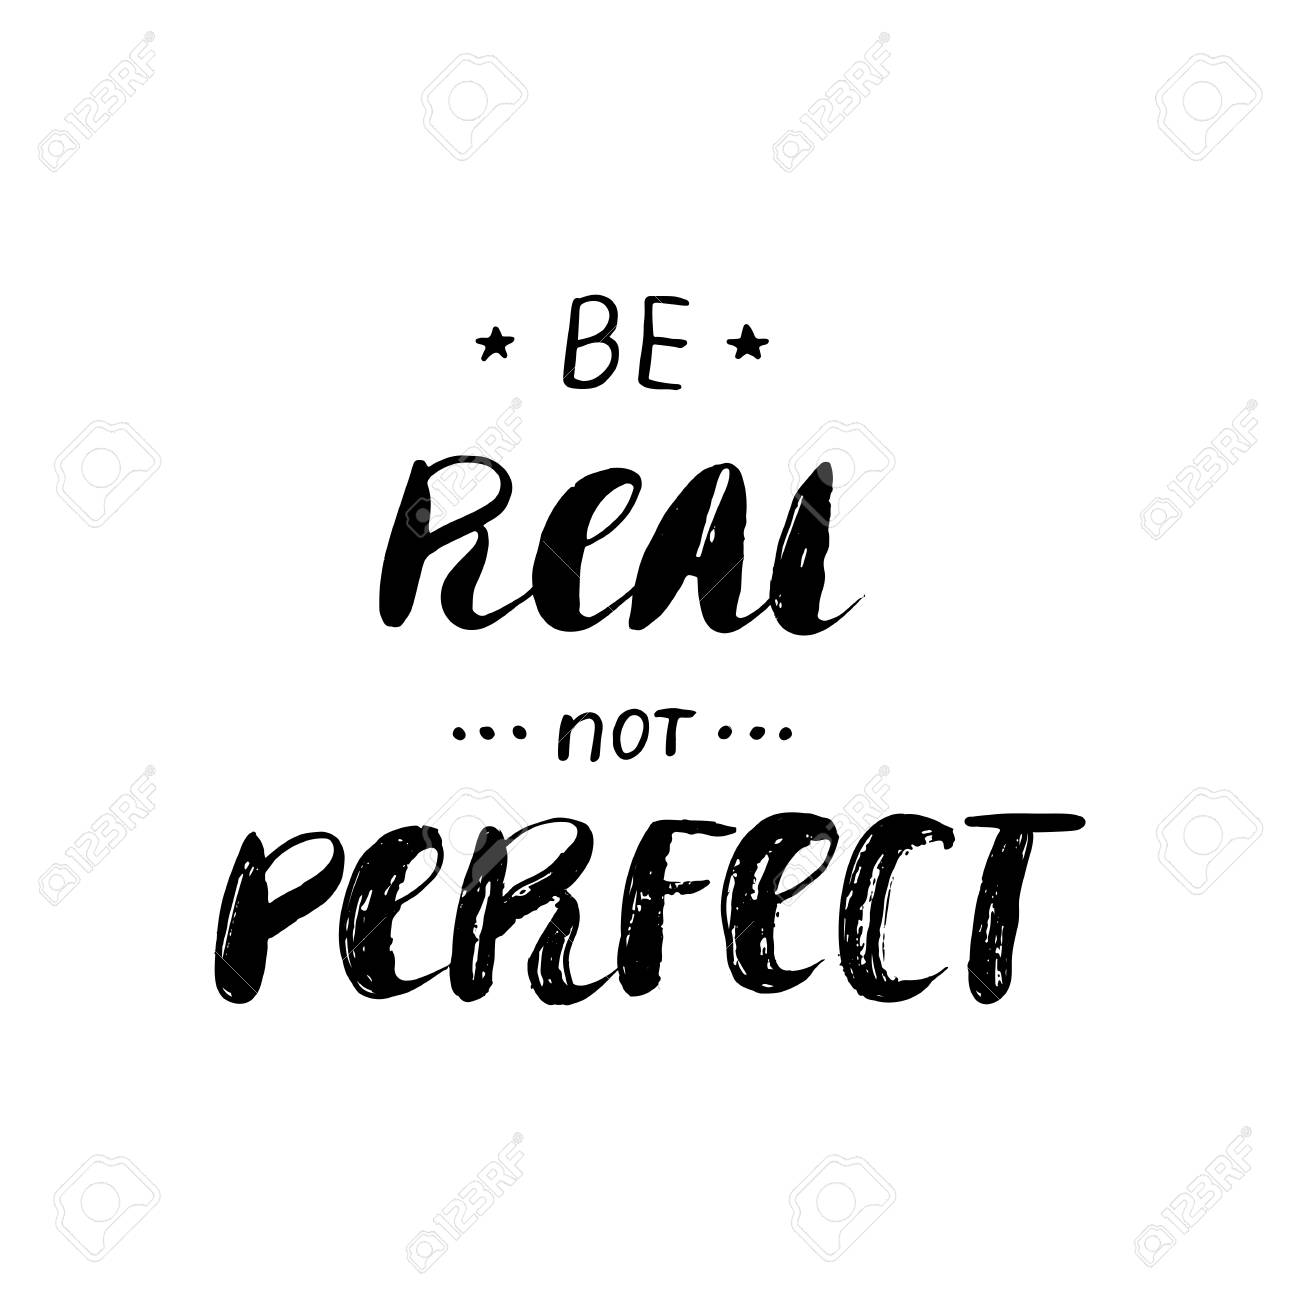 Be real not perfect - hand painted ink brush pen modern calligraphy...